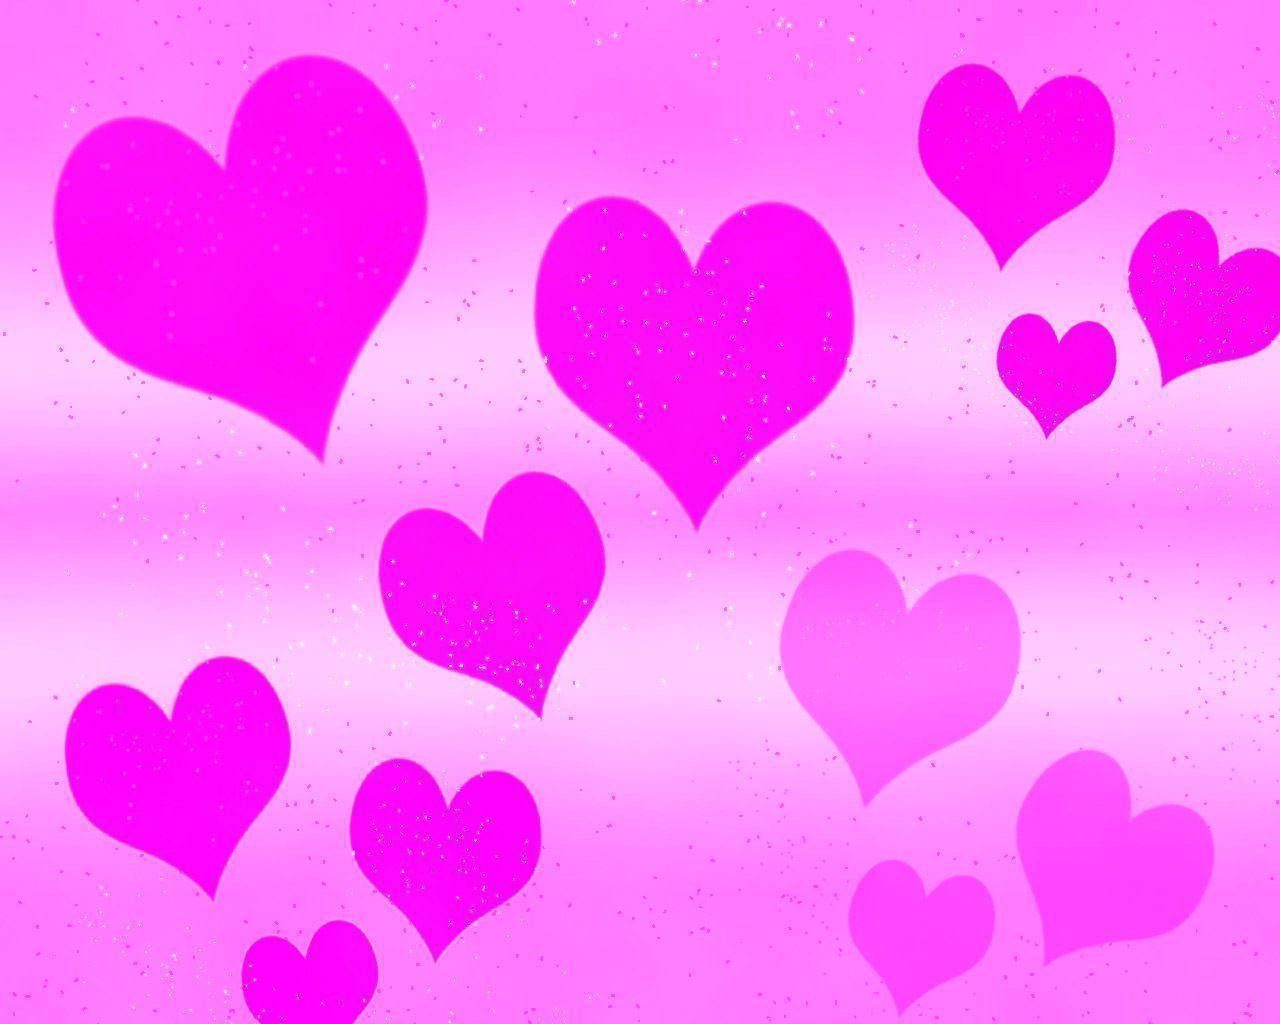 Pretty Heart Backgrounds - Wallpaper Cave